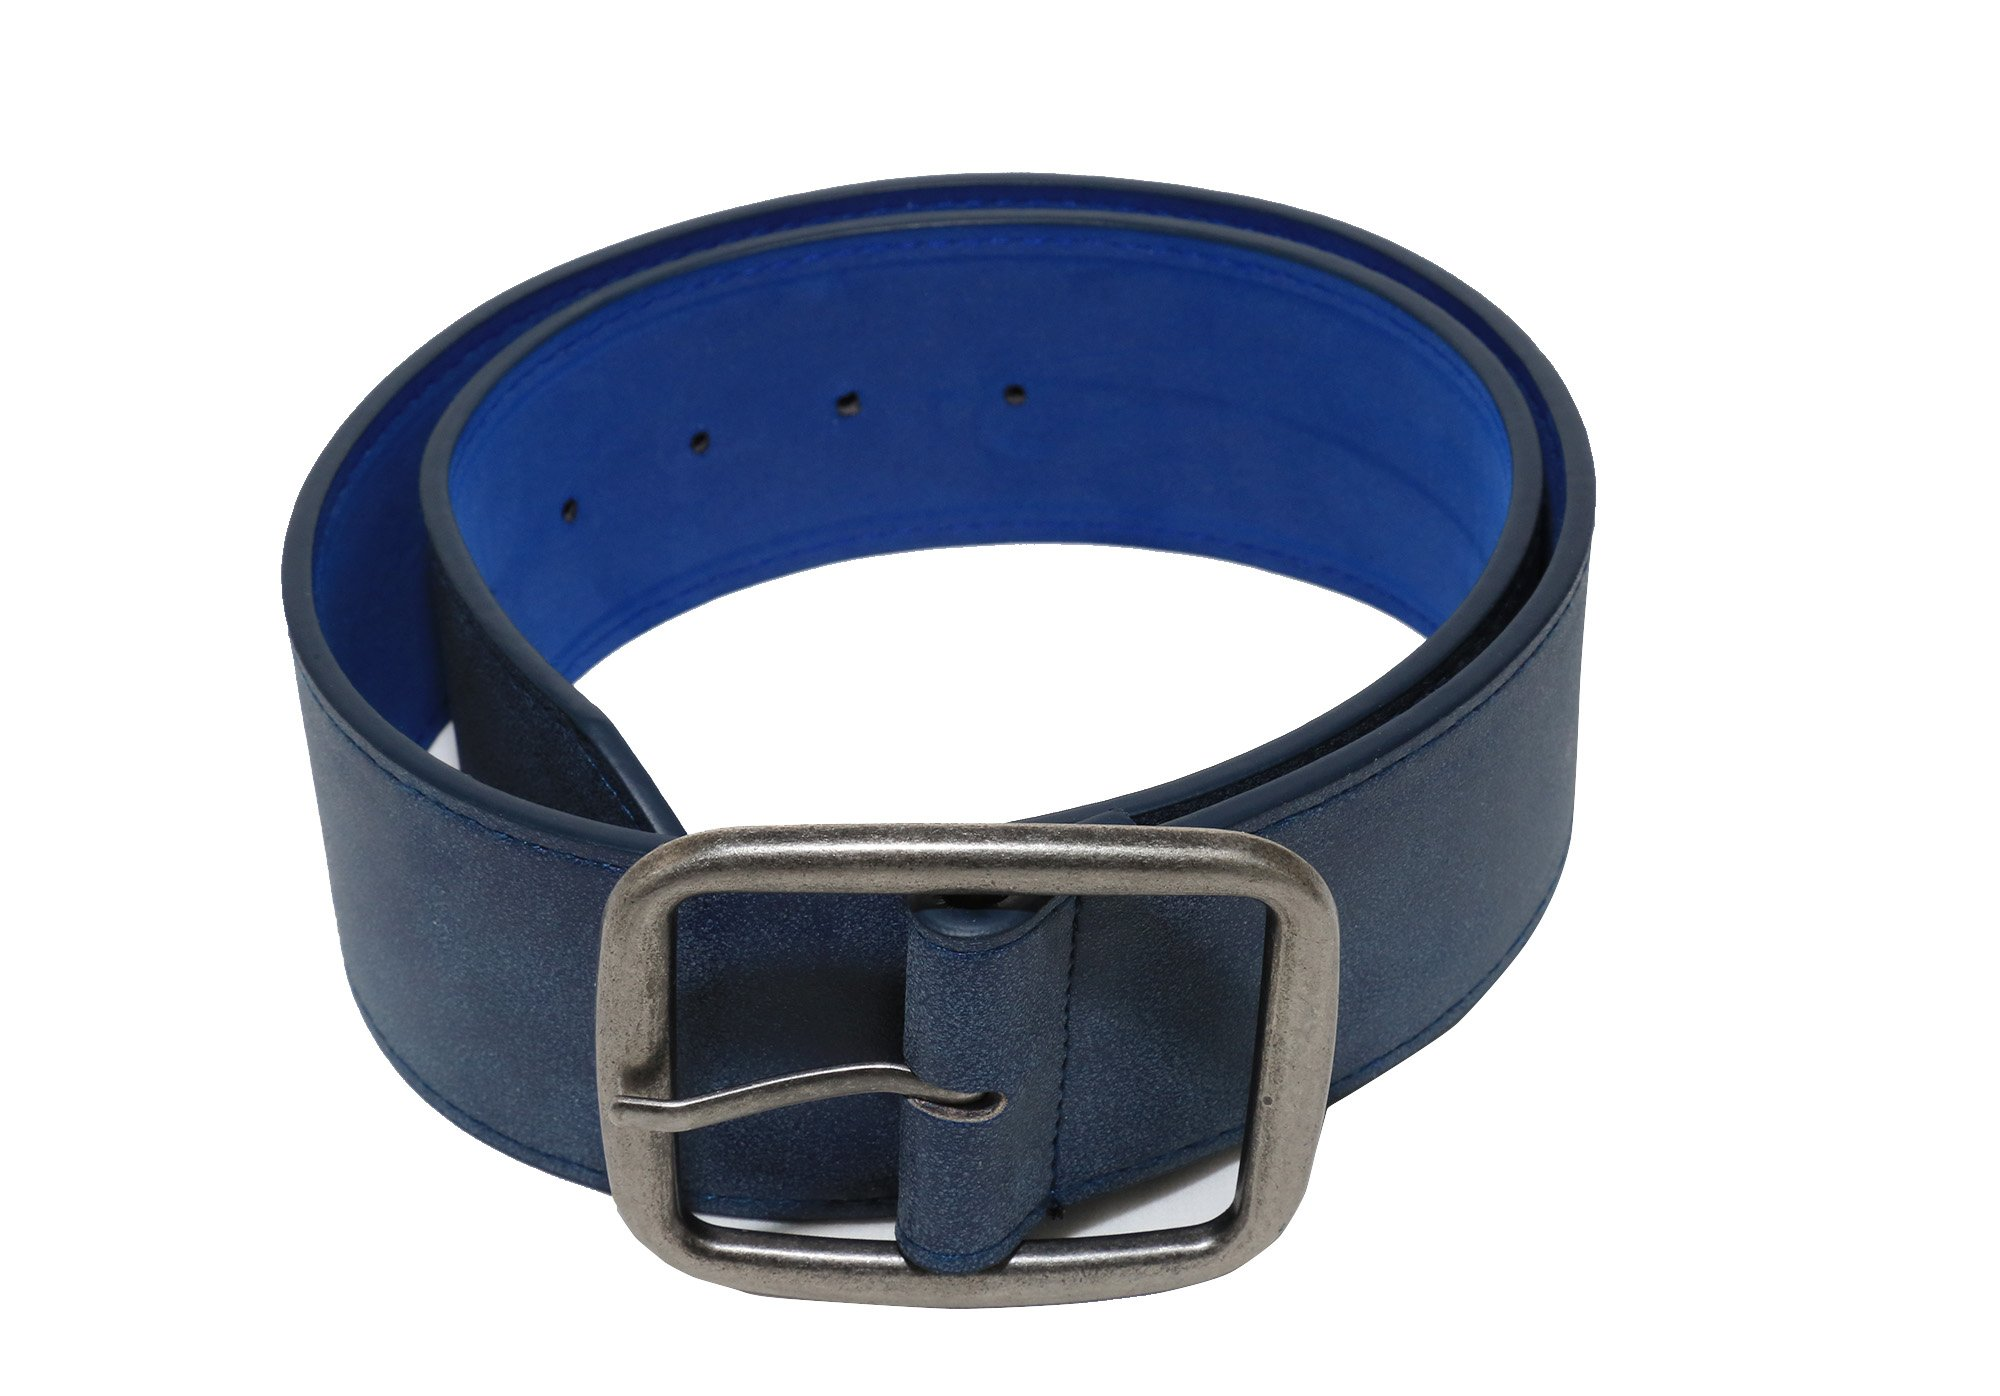 Modeway Women 2'' Wide Suede Leather Silver Square Buckle Adjustable Waist Belts (S-M, Navy-4#) by Modeway (Image #8)